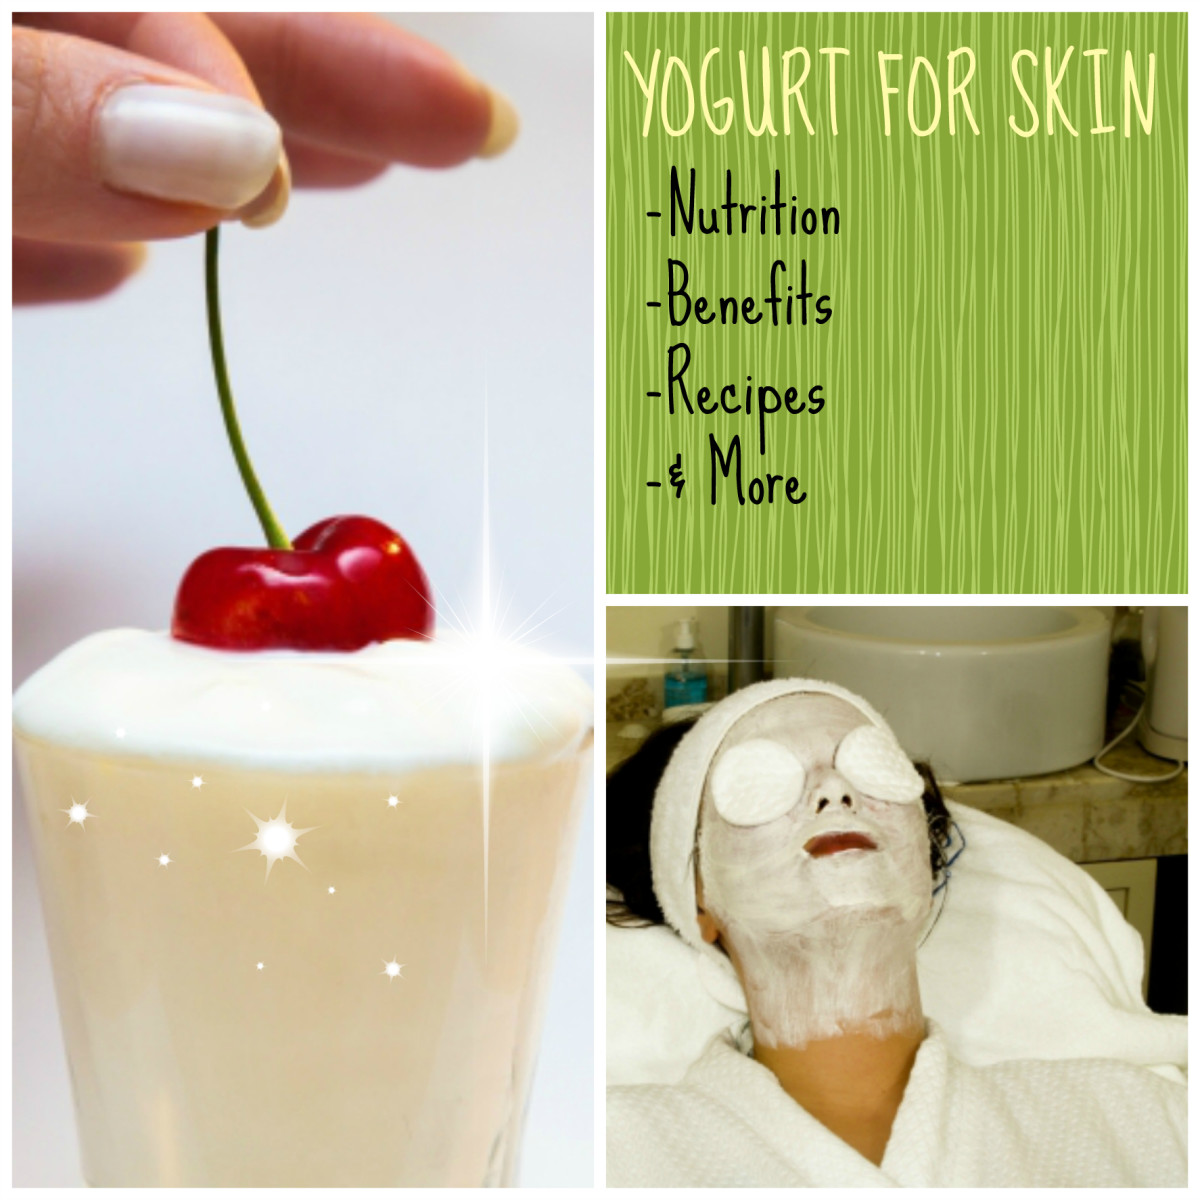 Yogurt for Skin | Powerful Nutrients in Yogurt for Glowing Skin